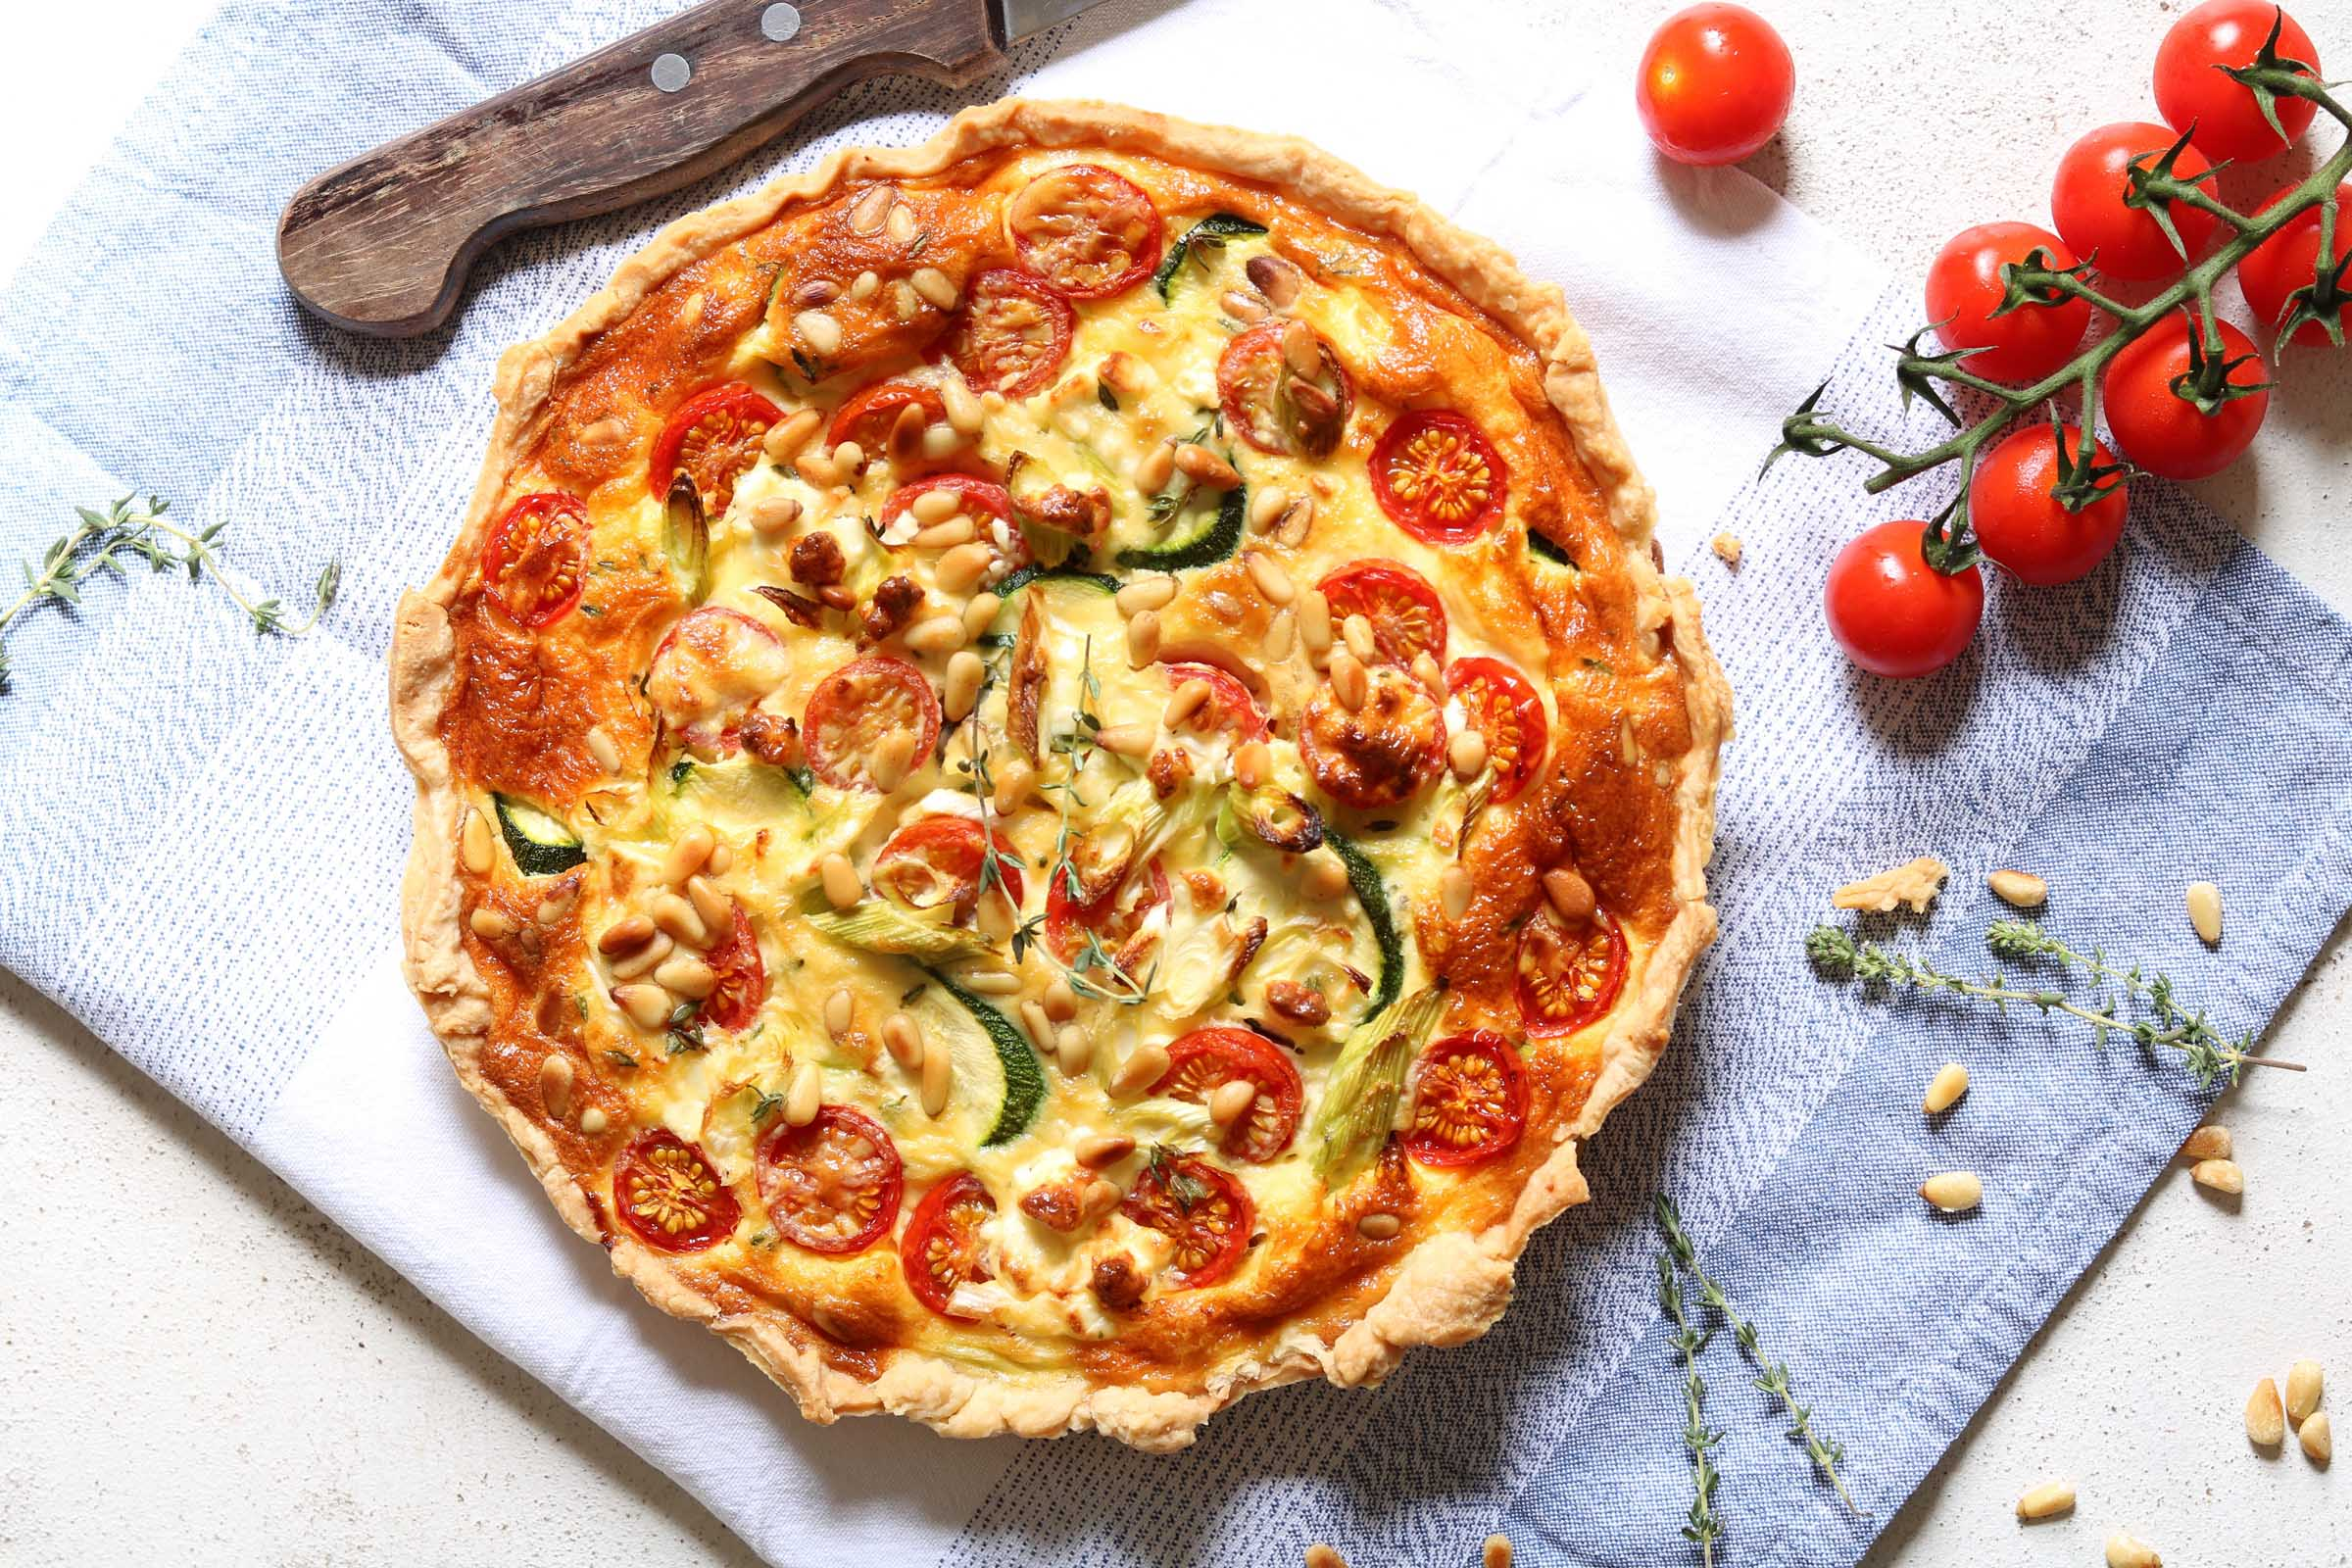 Courgette Quiche with Cherry Tomatoes & Feta